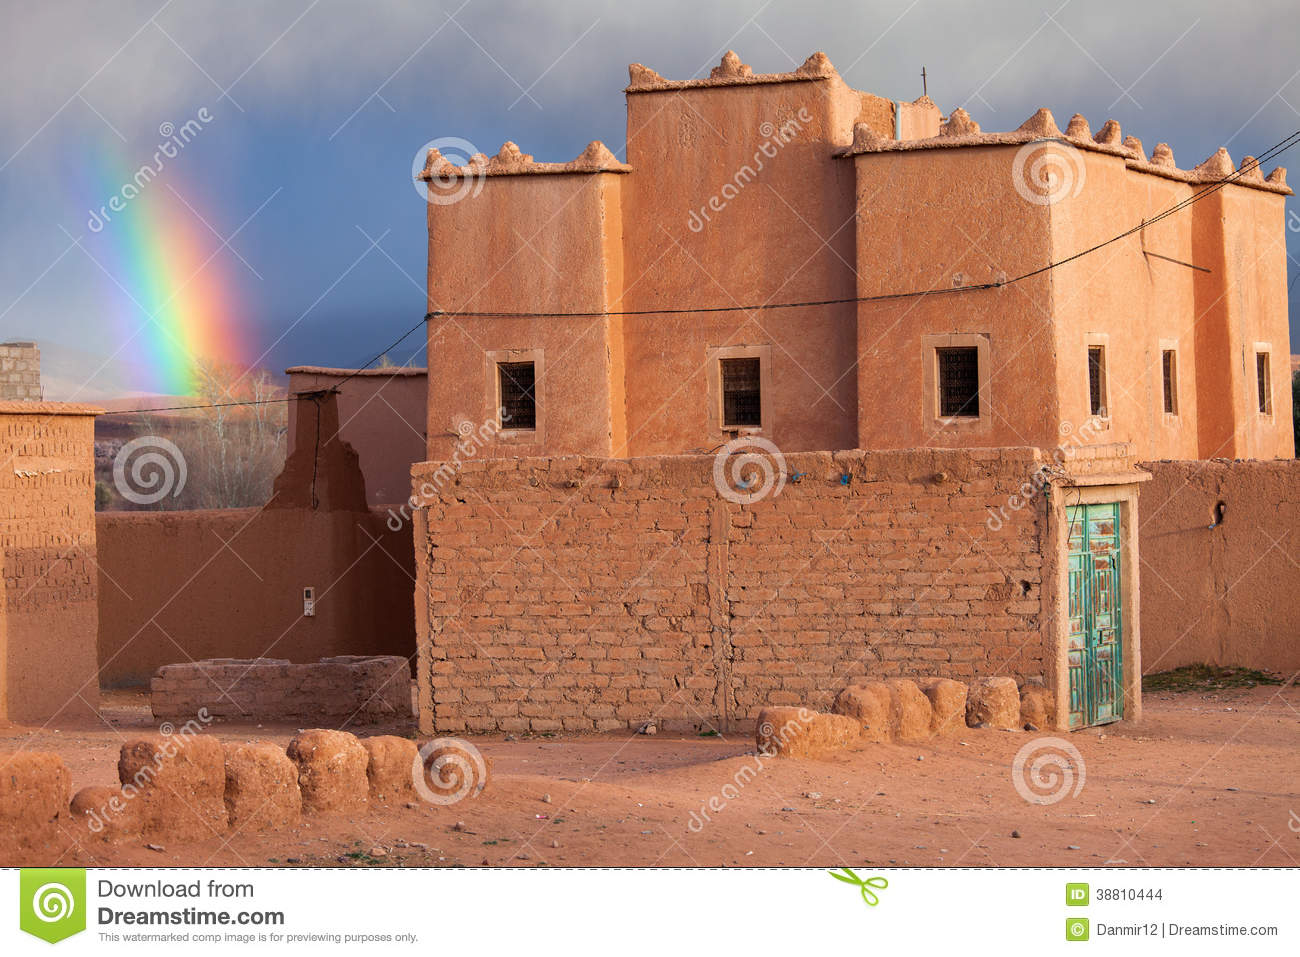 arc en ciel au dessus d 39 une maison traditionnelle au maroc photo stock image 38810444. Black Bedroom Furniture Sets. Home Design Ideas